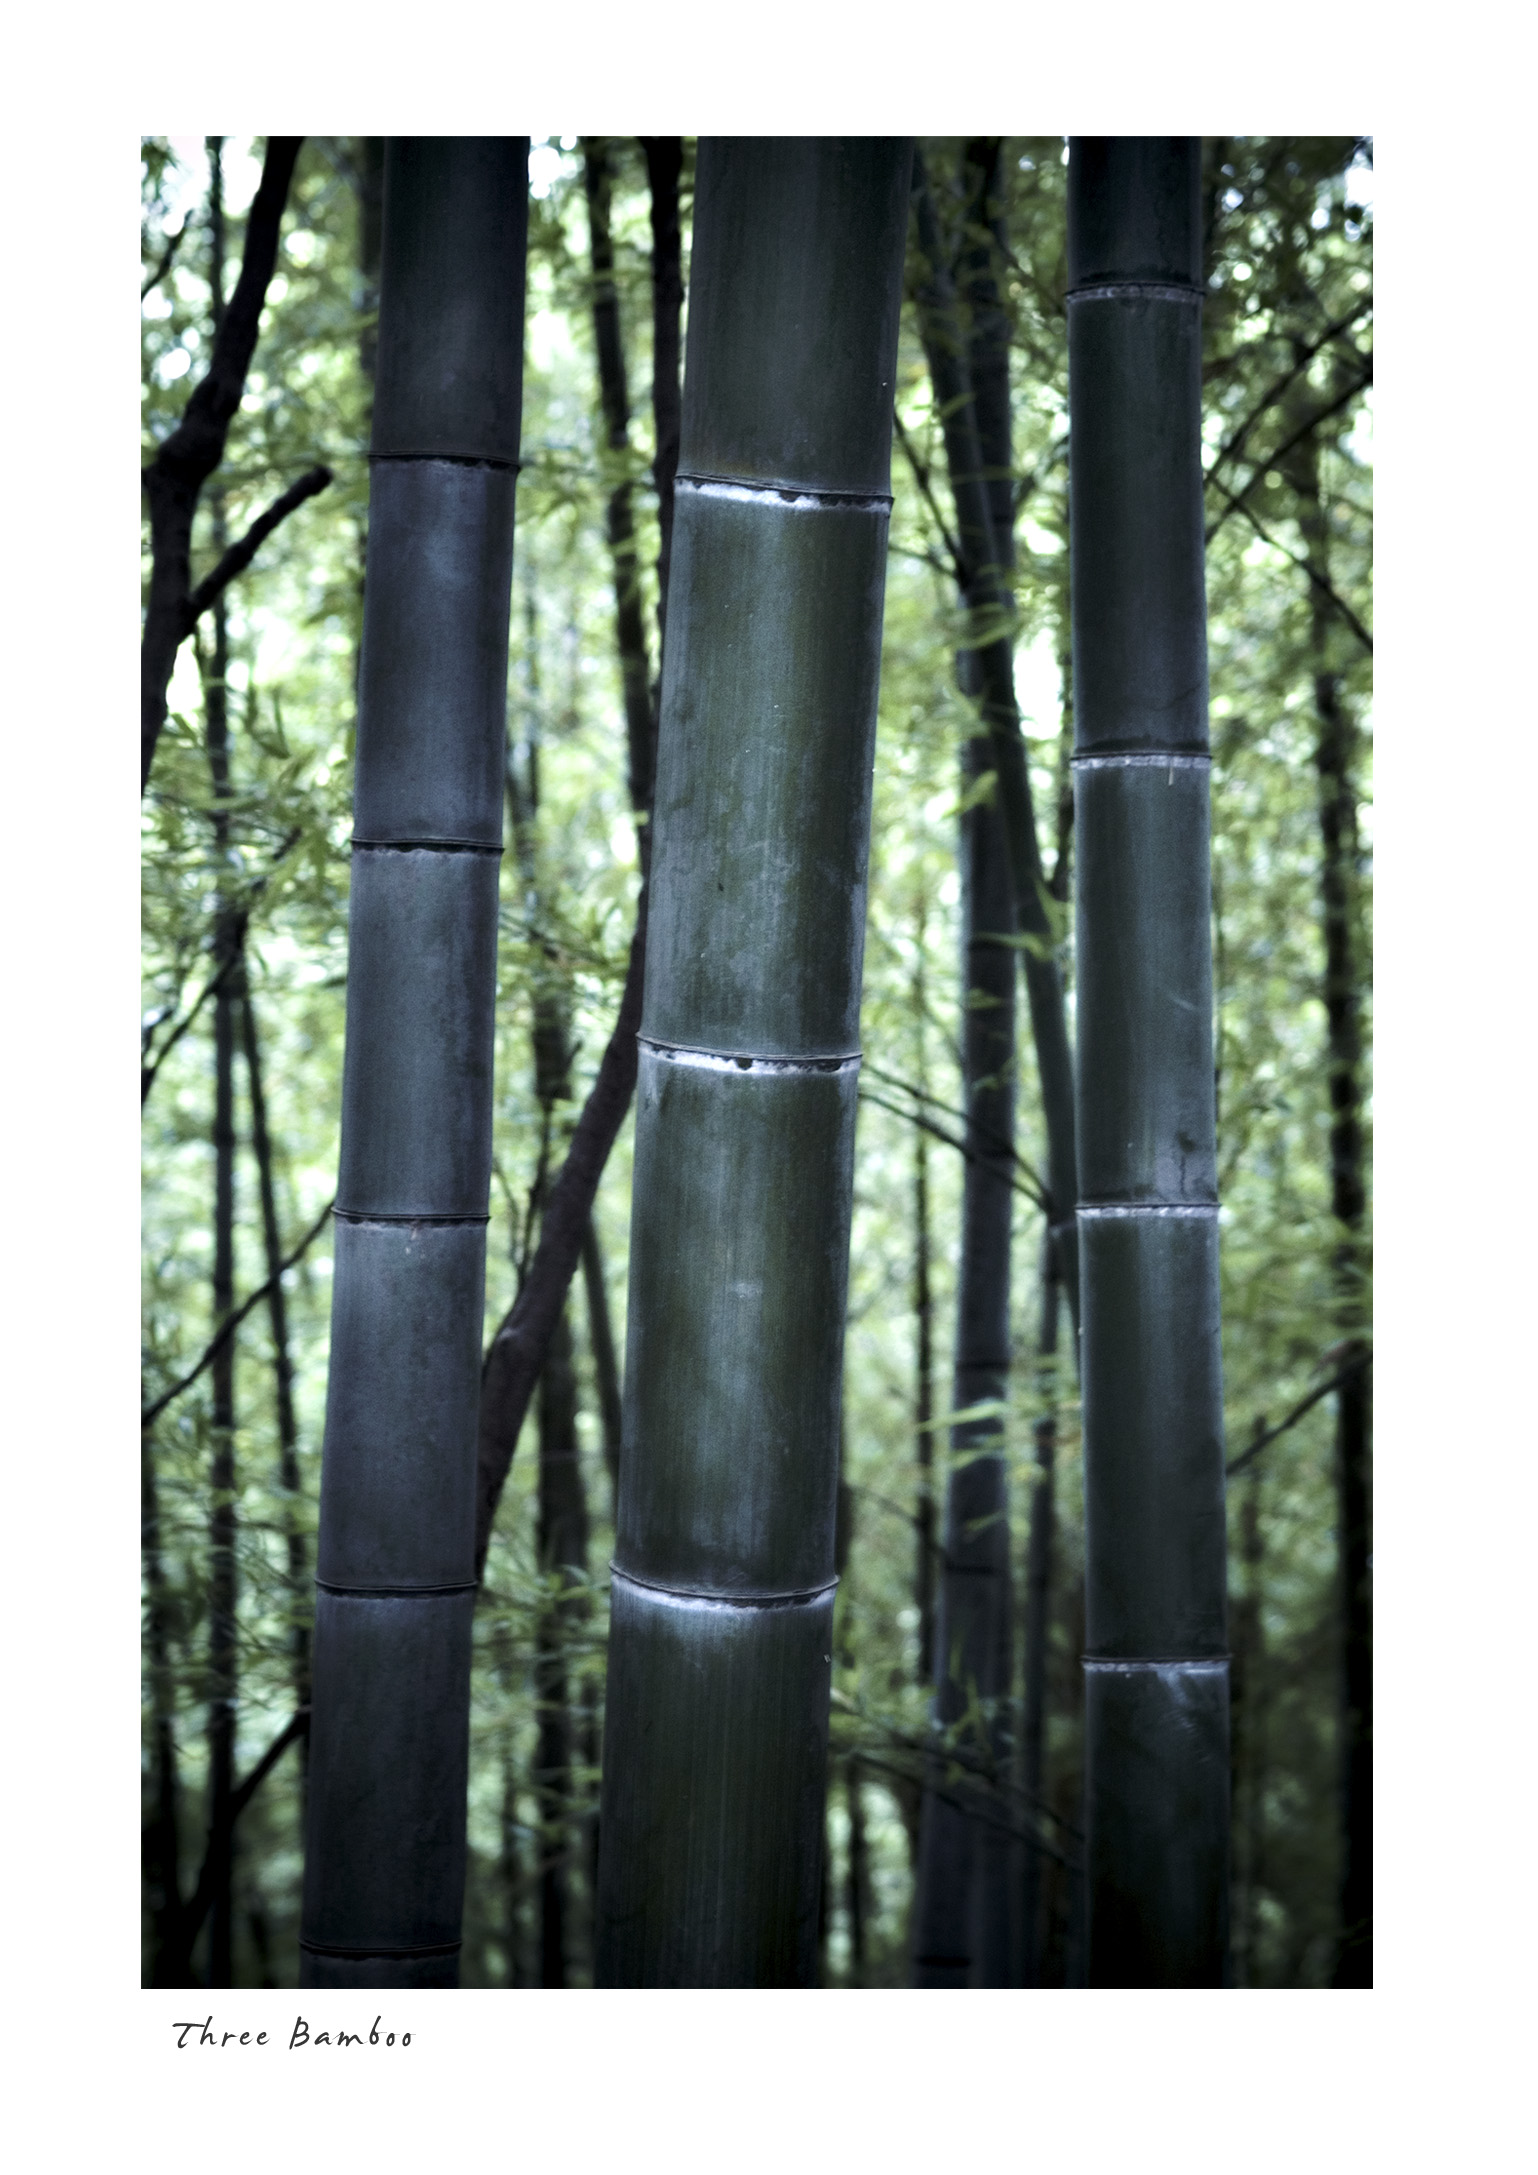 Three Bamboo